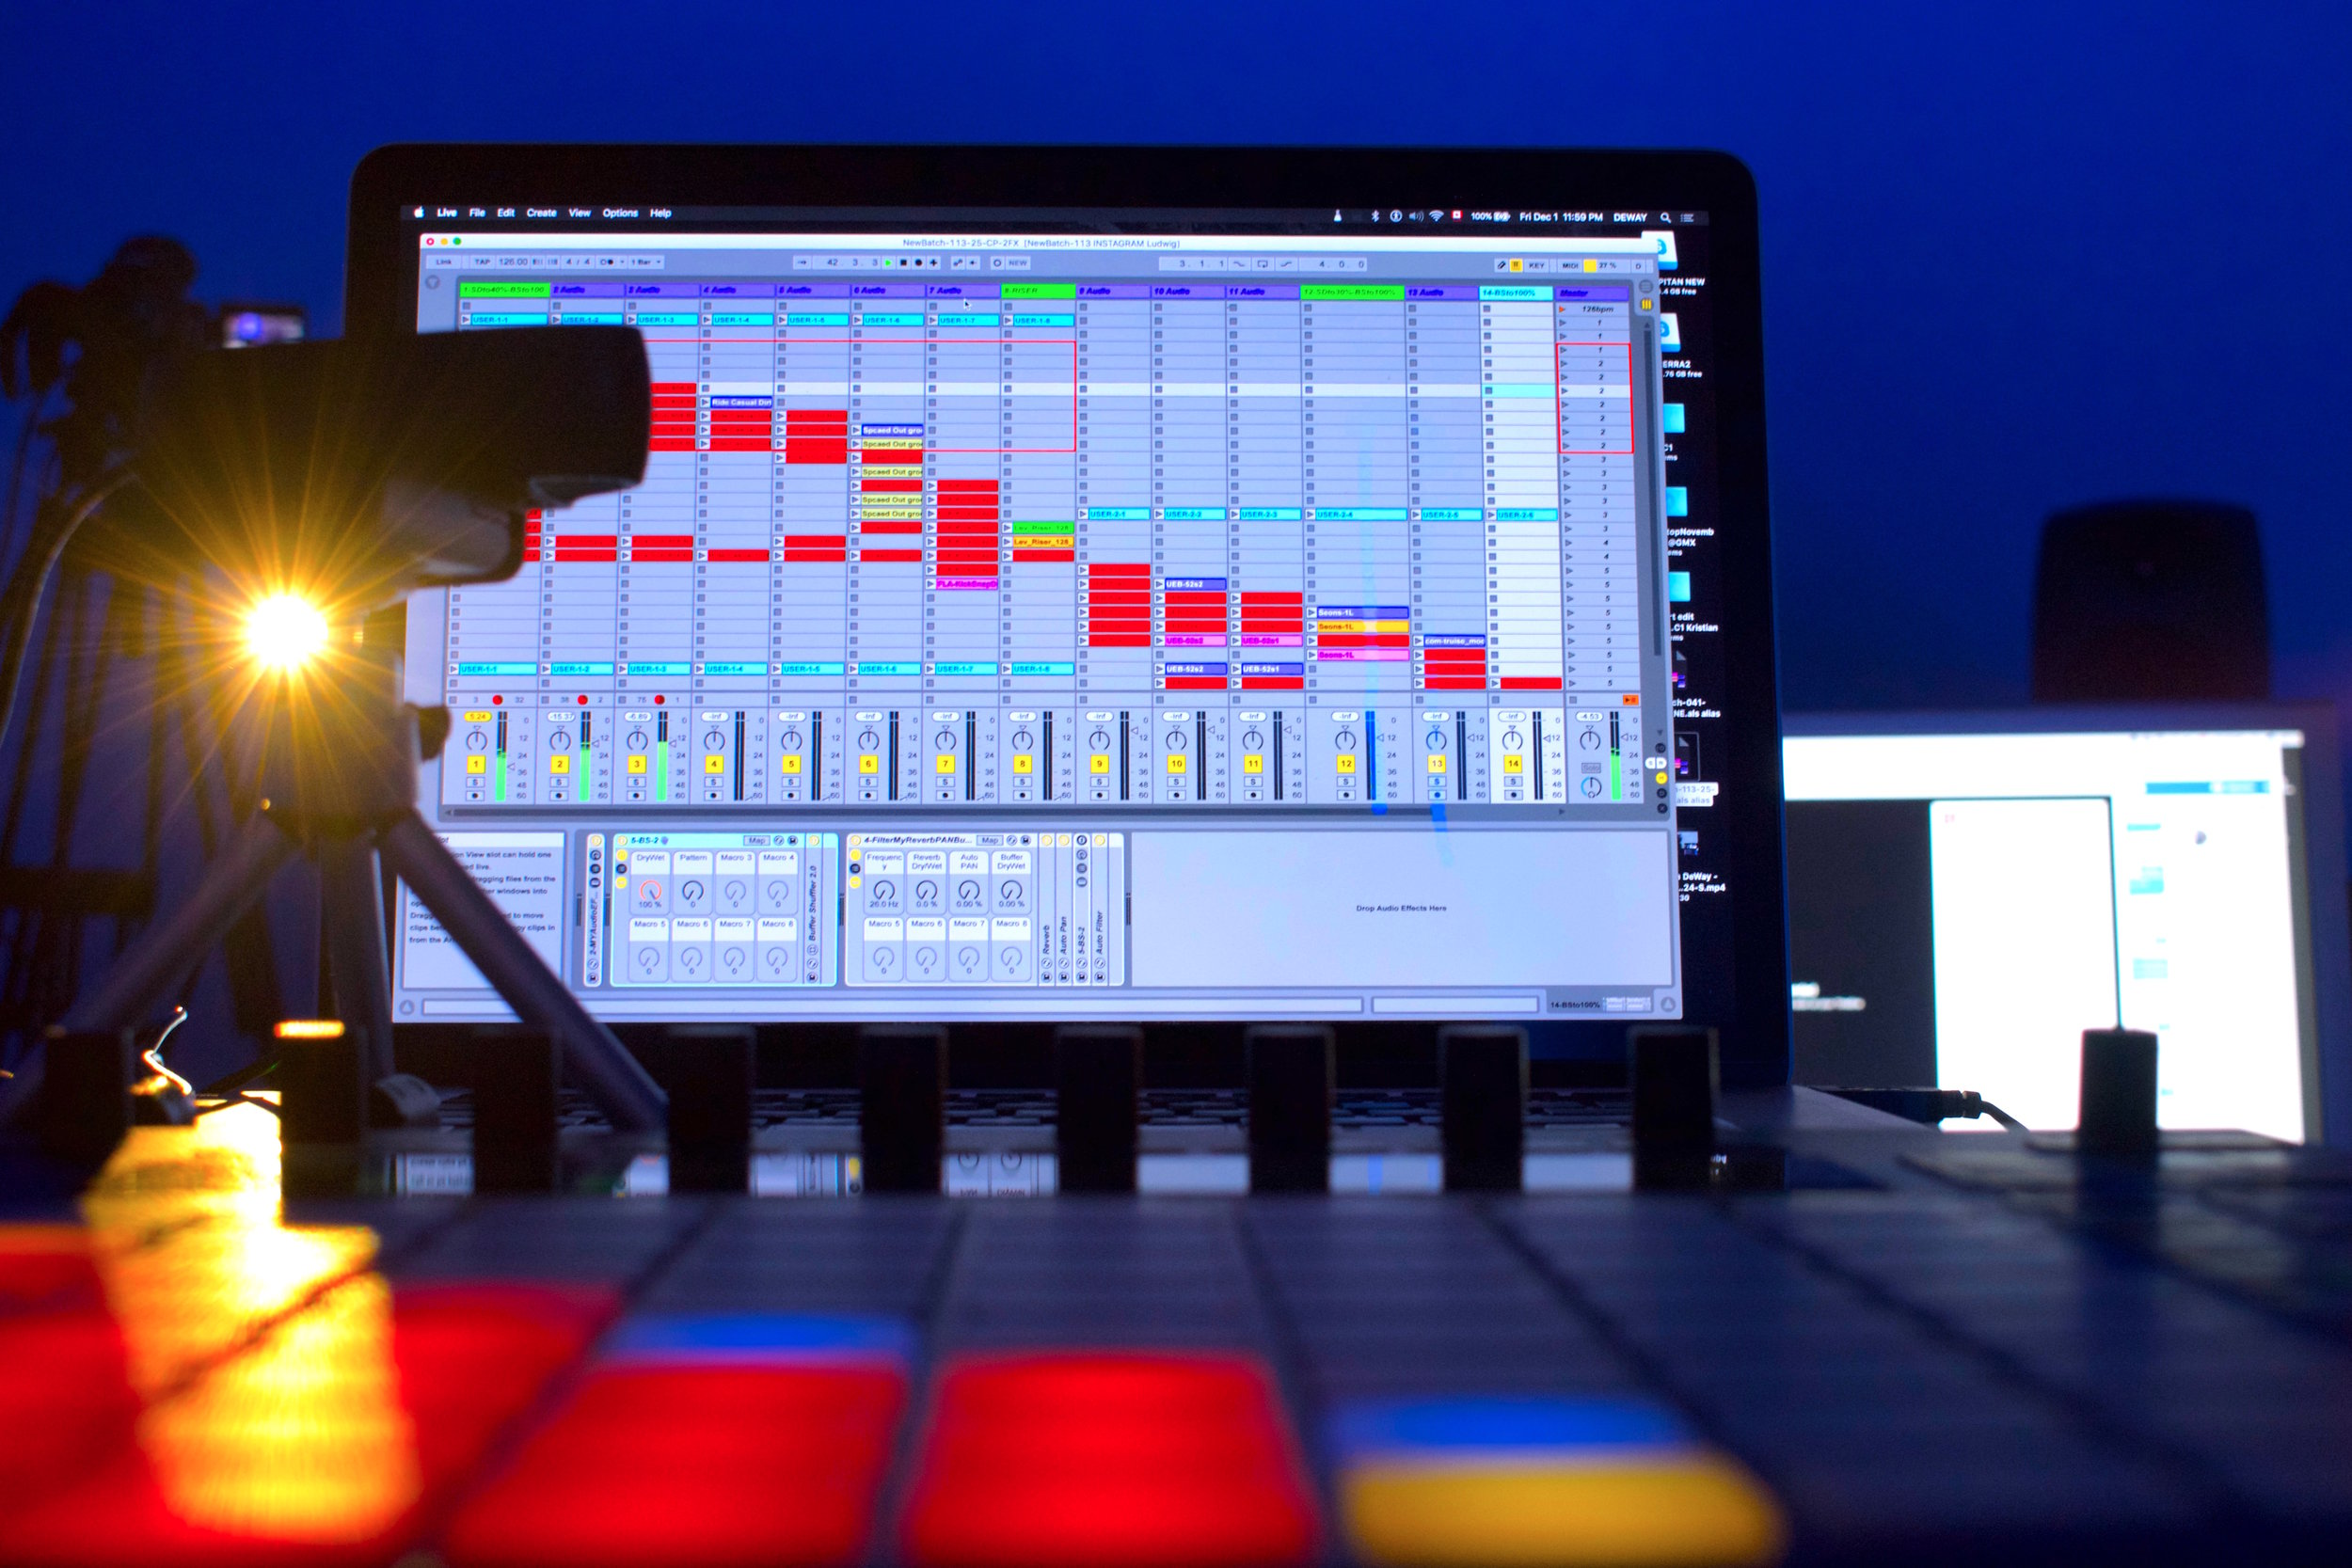 Figure 23 – Ableton's software in conjunction with the Push 2 instrument allows me to develop the structured and arranged sections of my compositions, 2018.